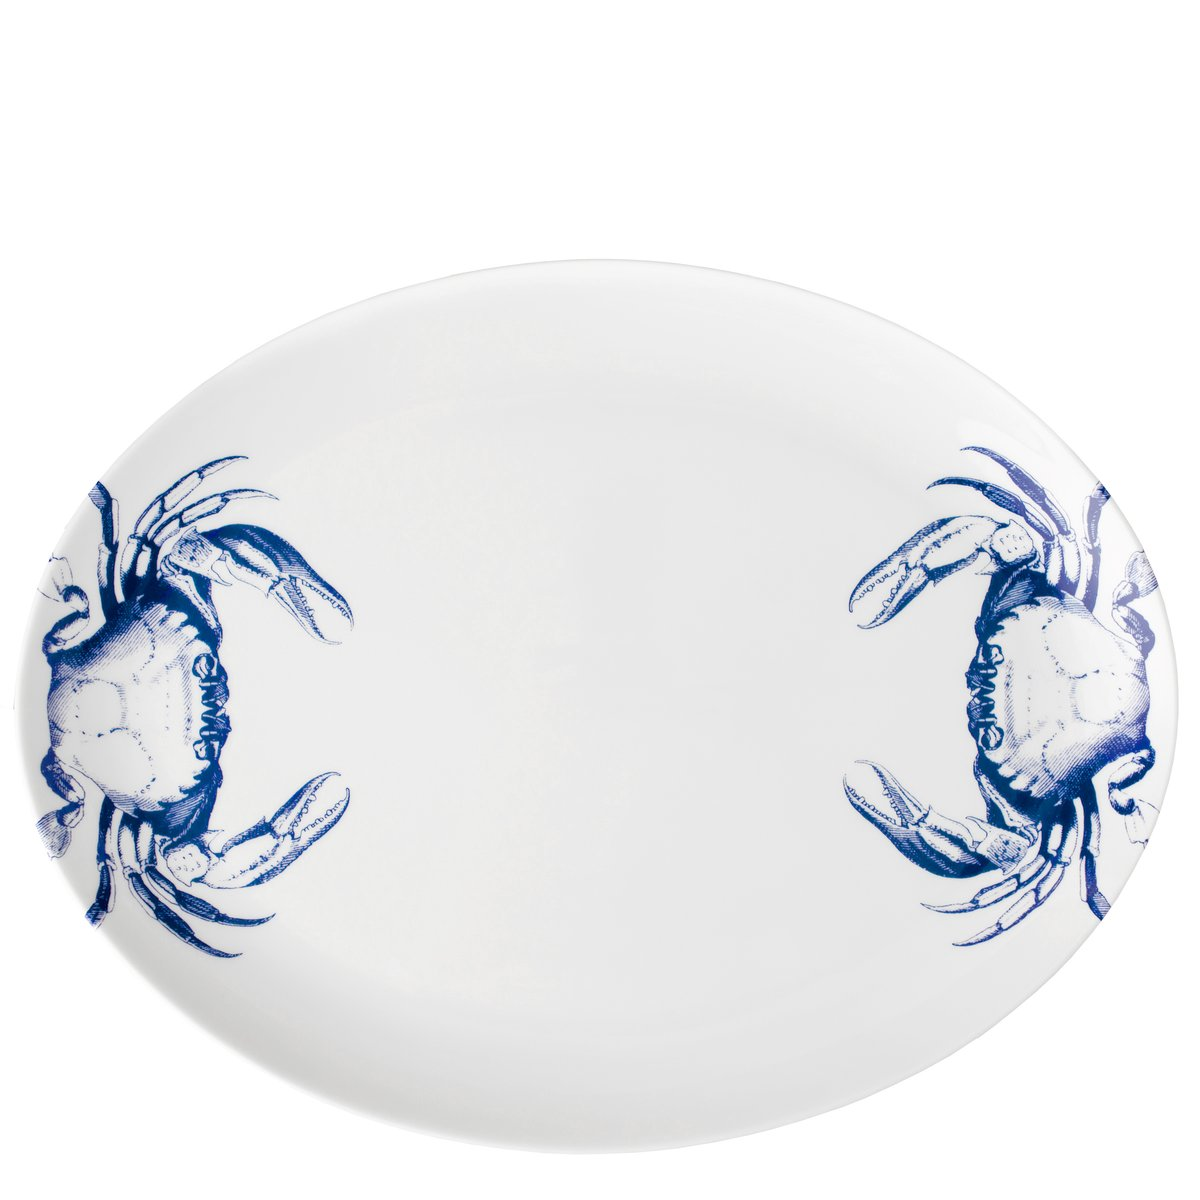 Blue Crabs Serveware